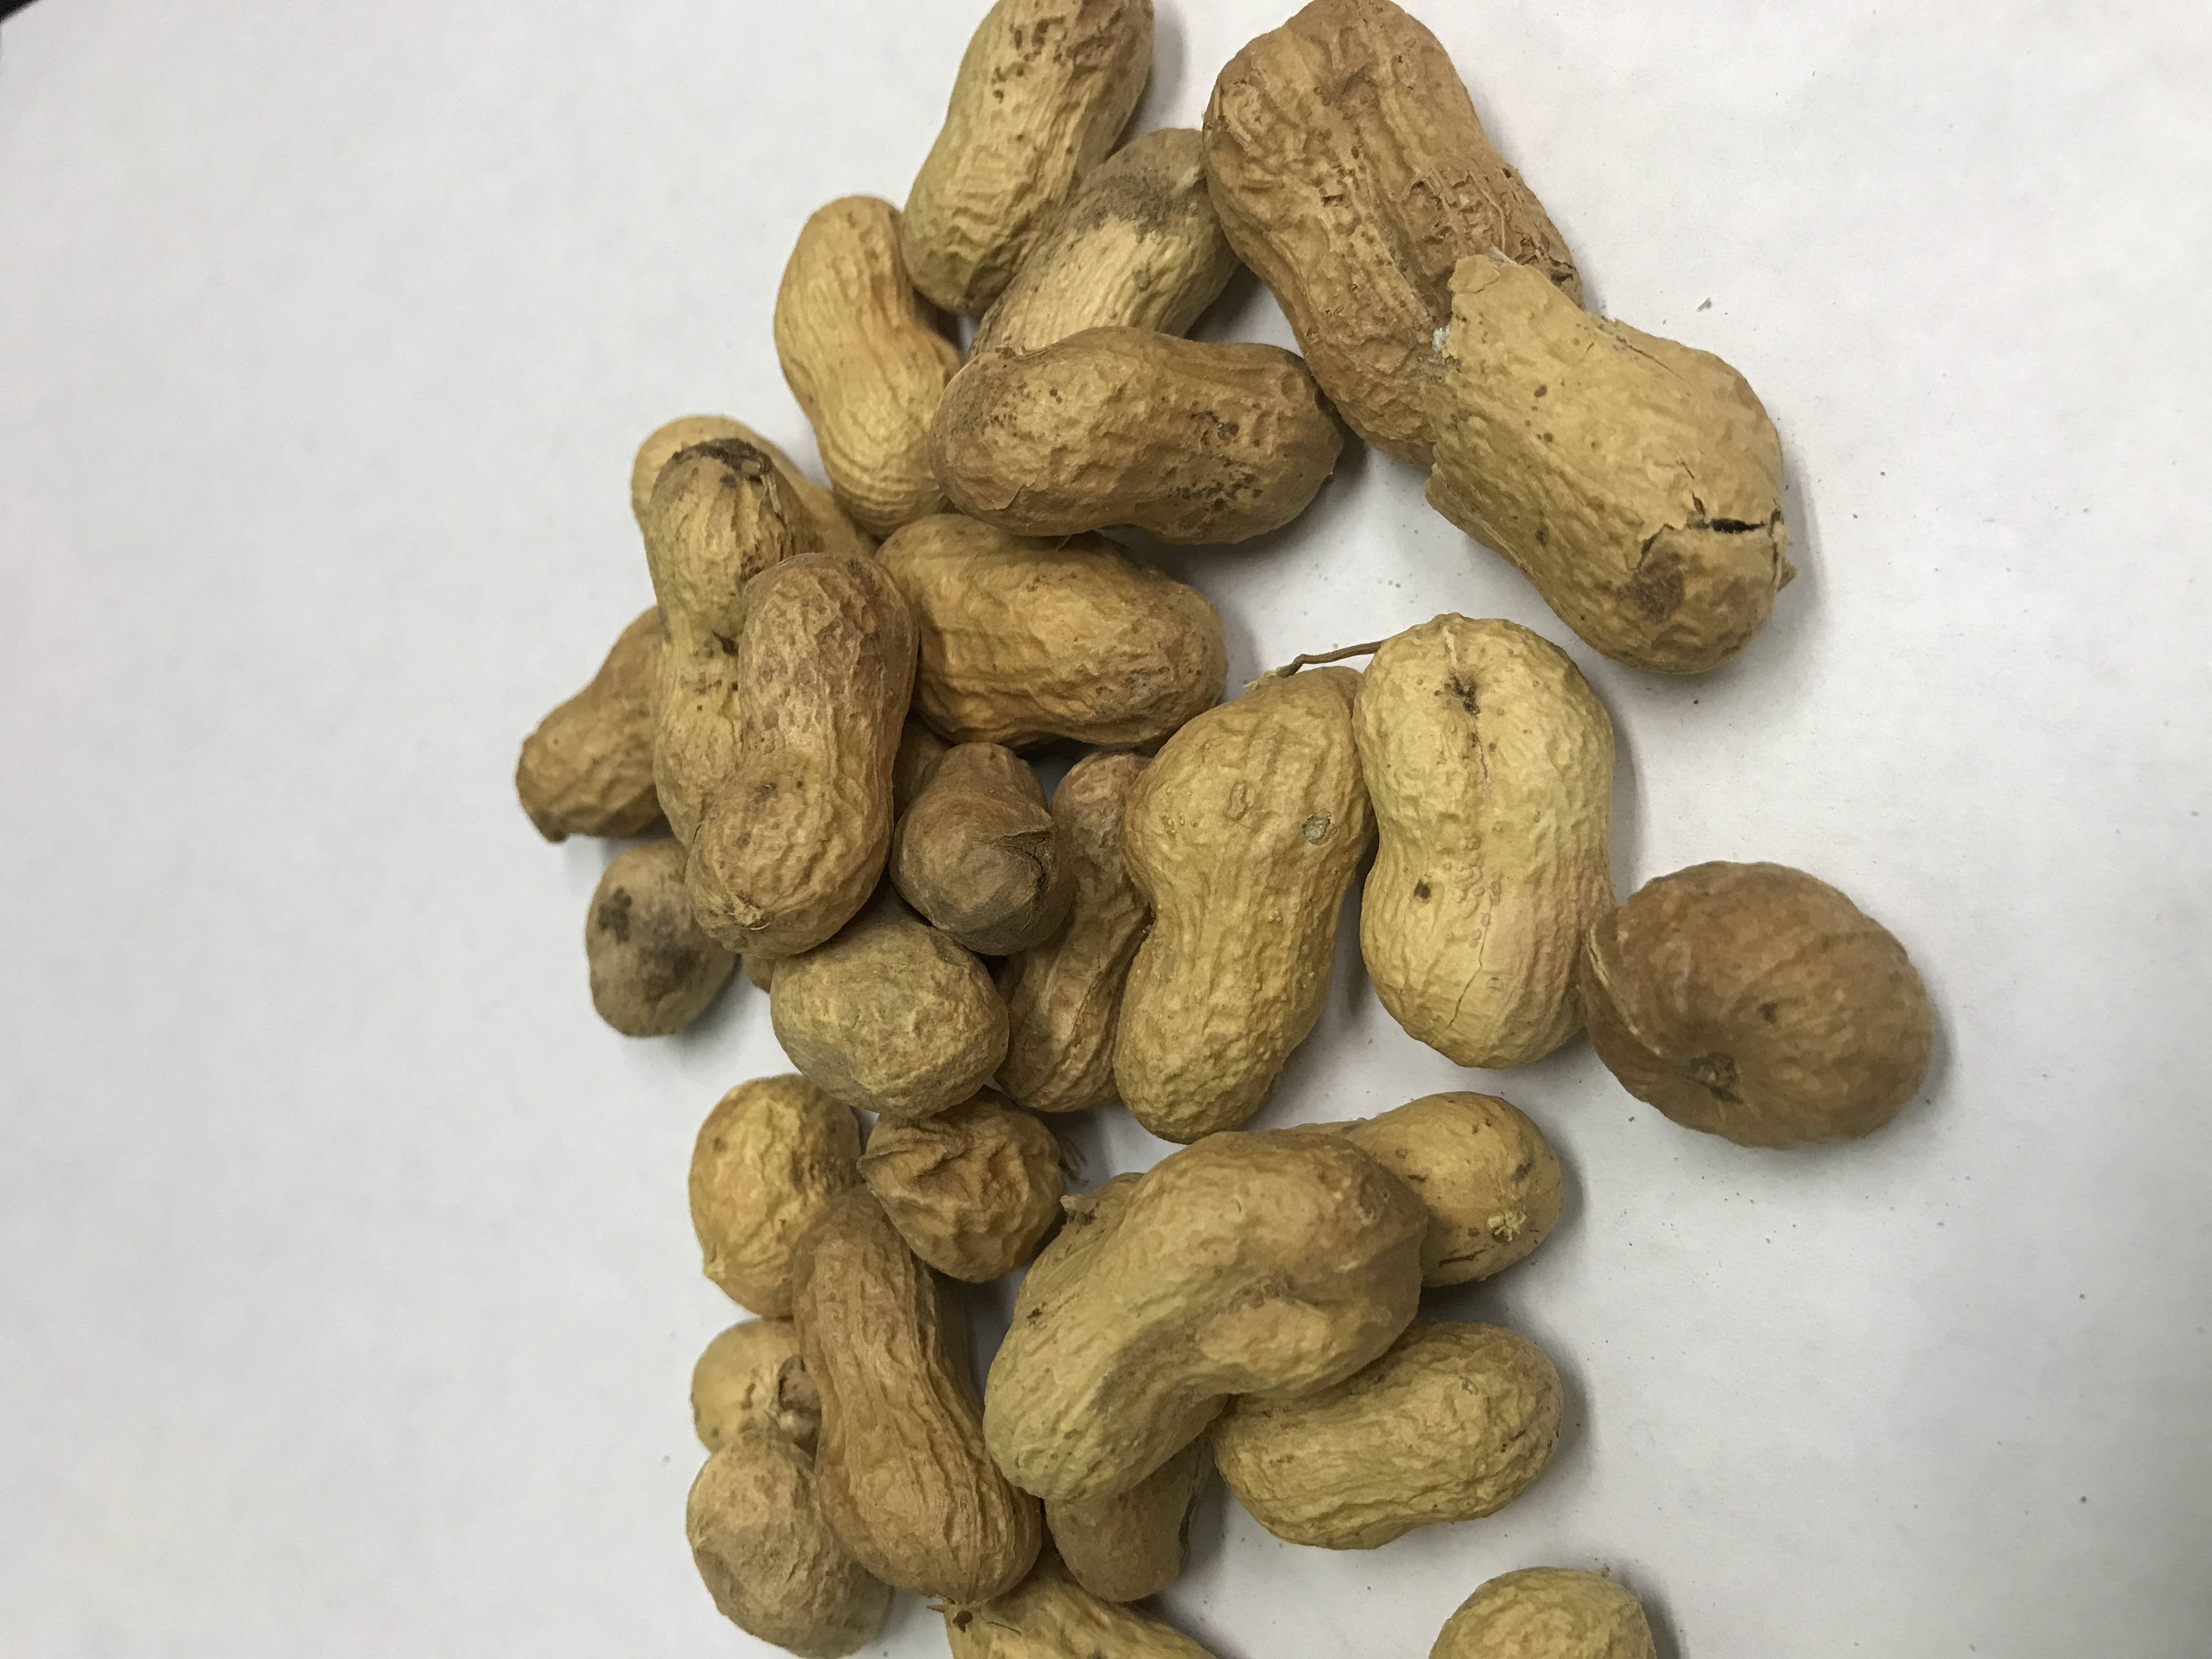 Peanuts In the Shell